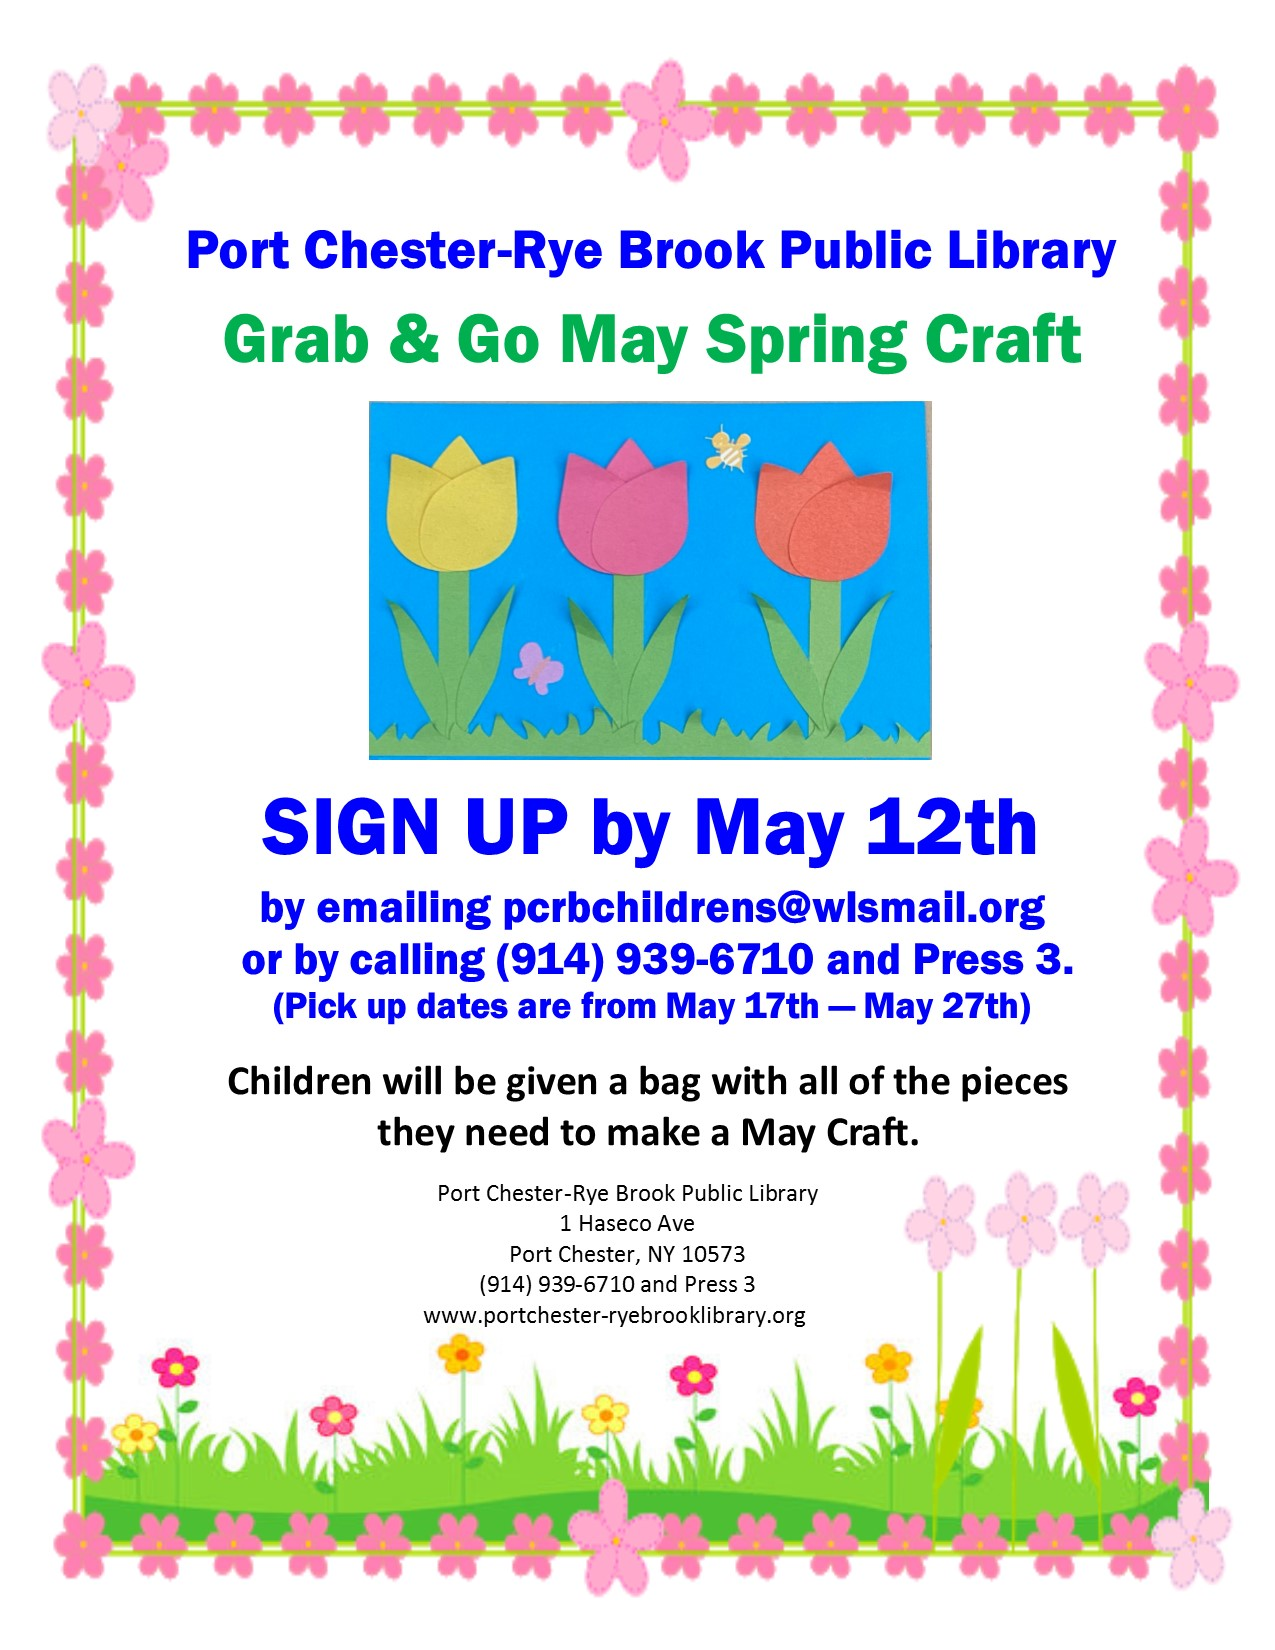 May Grab and Go Flower Craft Pickup at Port Chester-Rye Brook Library